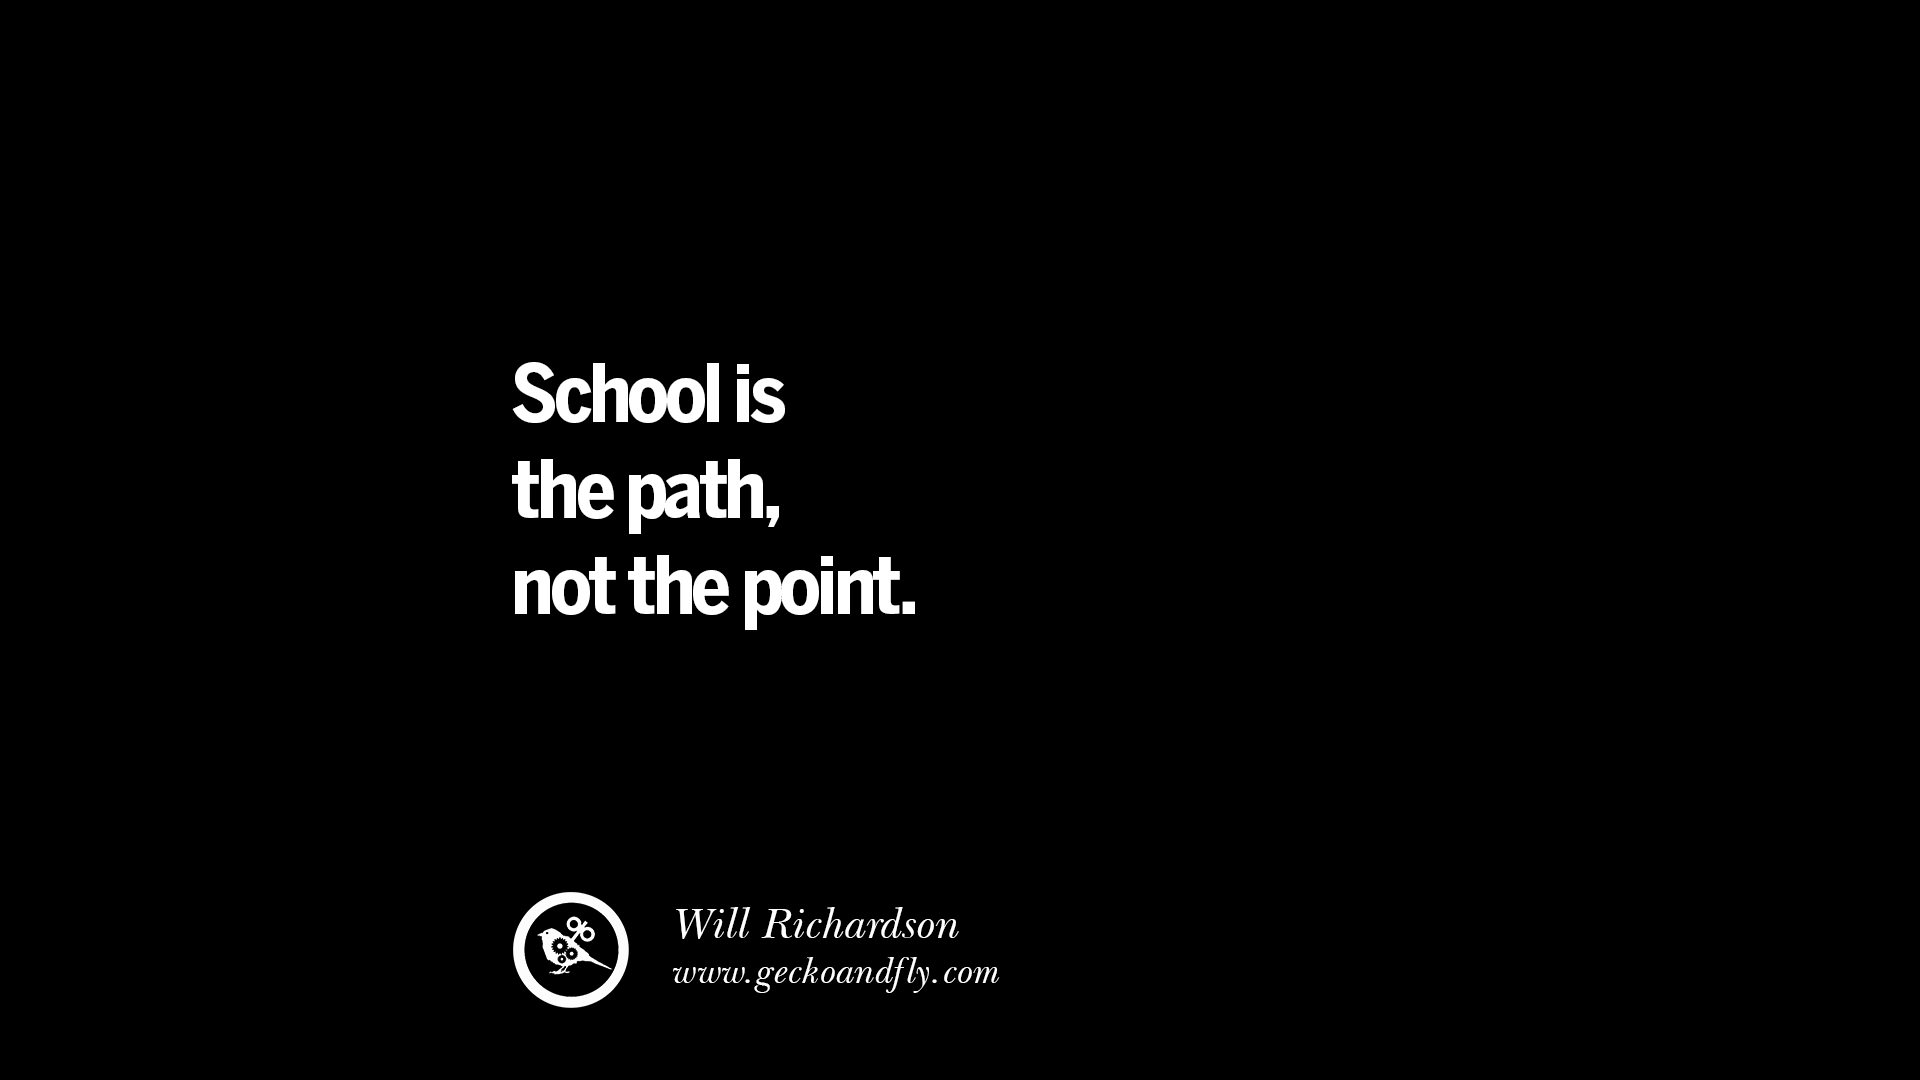 Education Quotes: 57 Famous Quotes On Education, Teaching, Schooling And